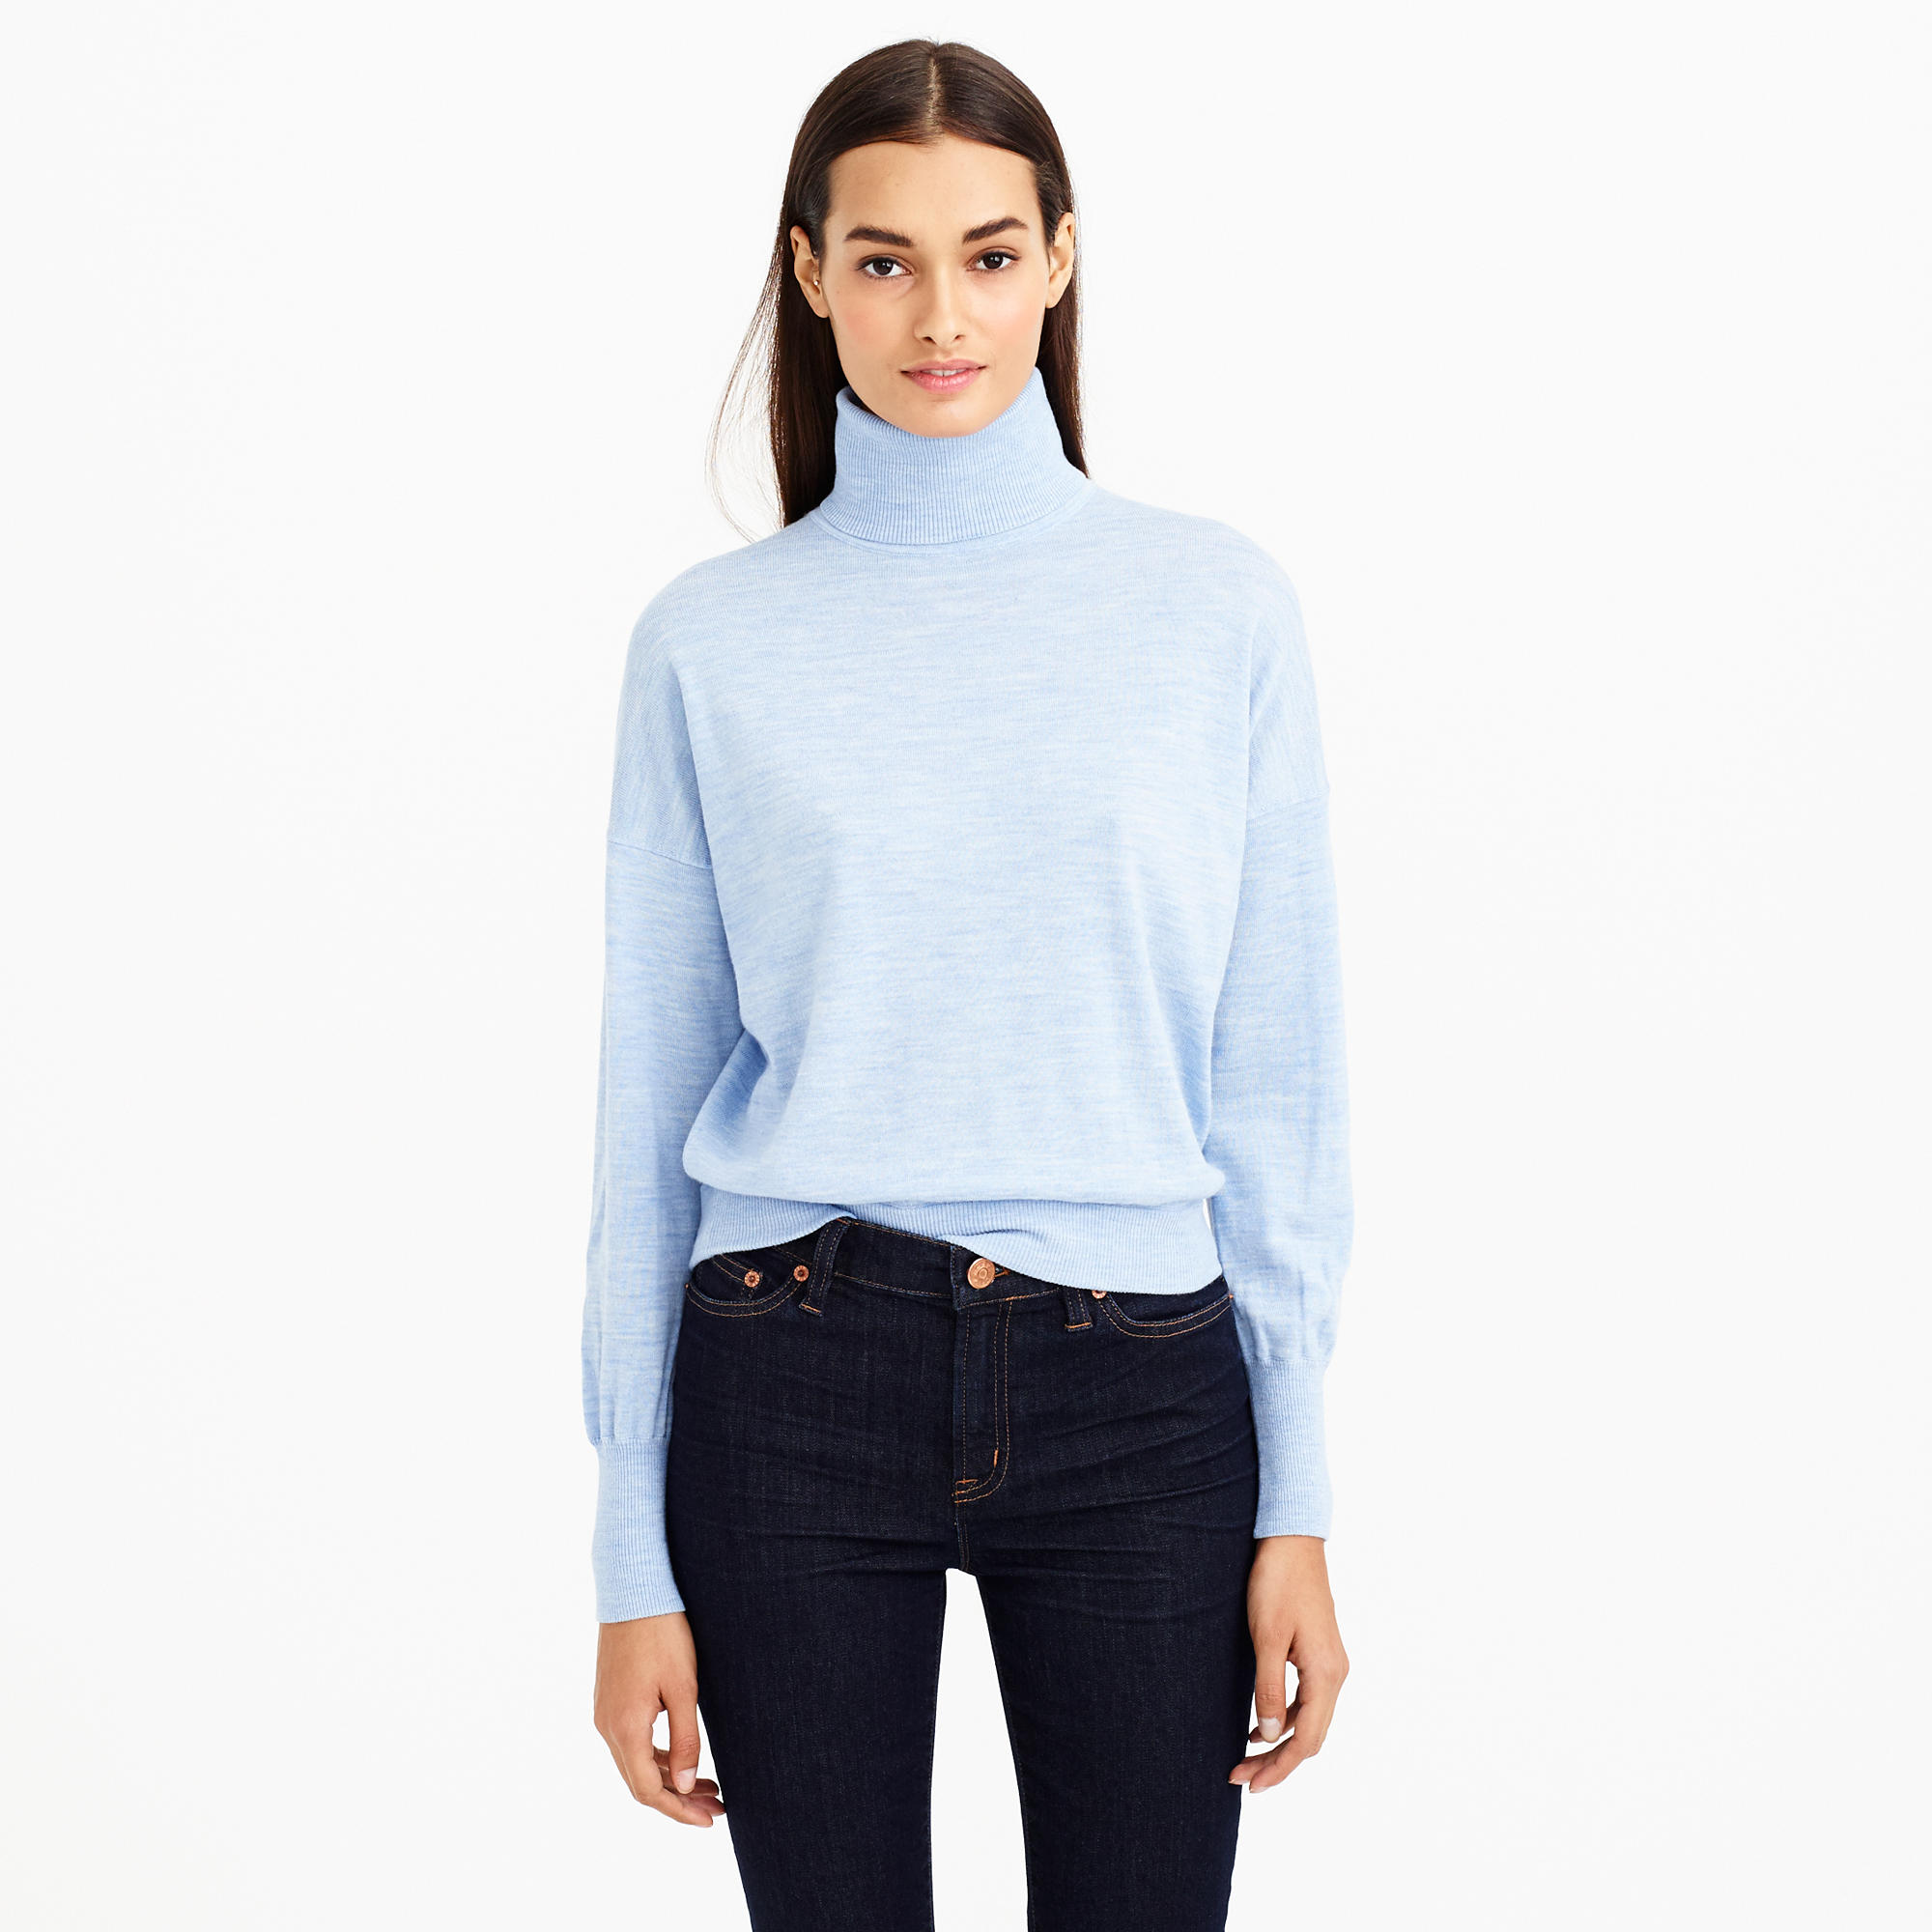 Heathered merino wool turtleneck sweater